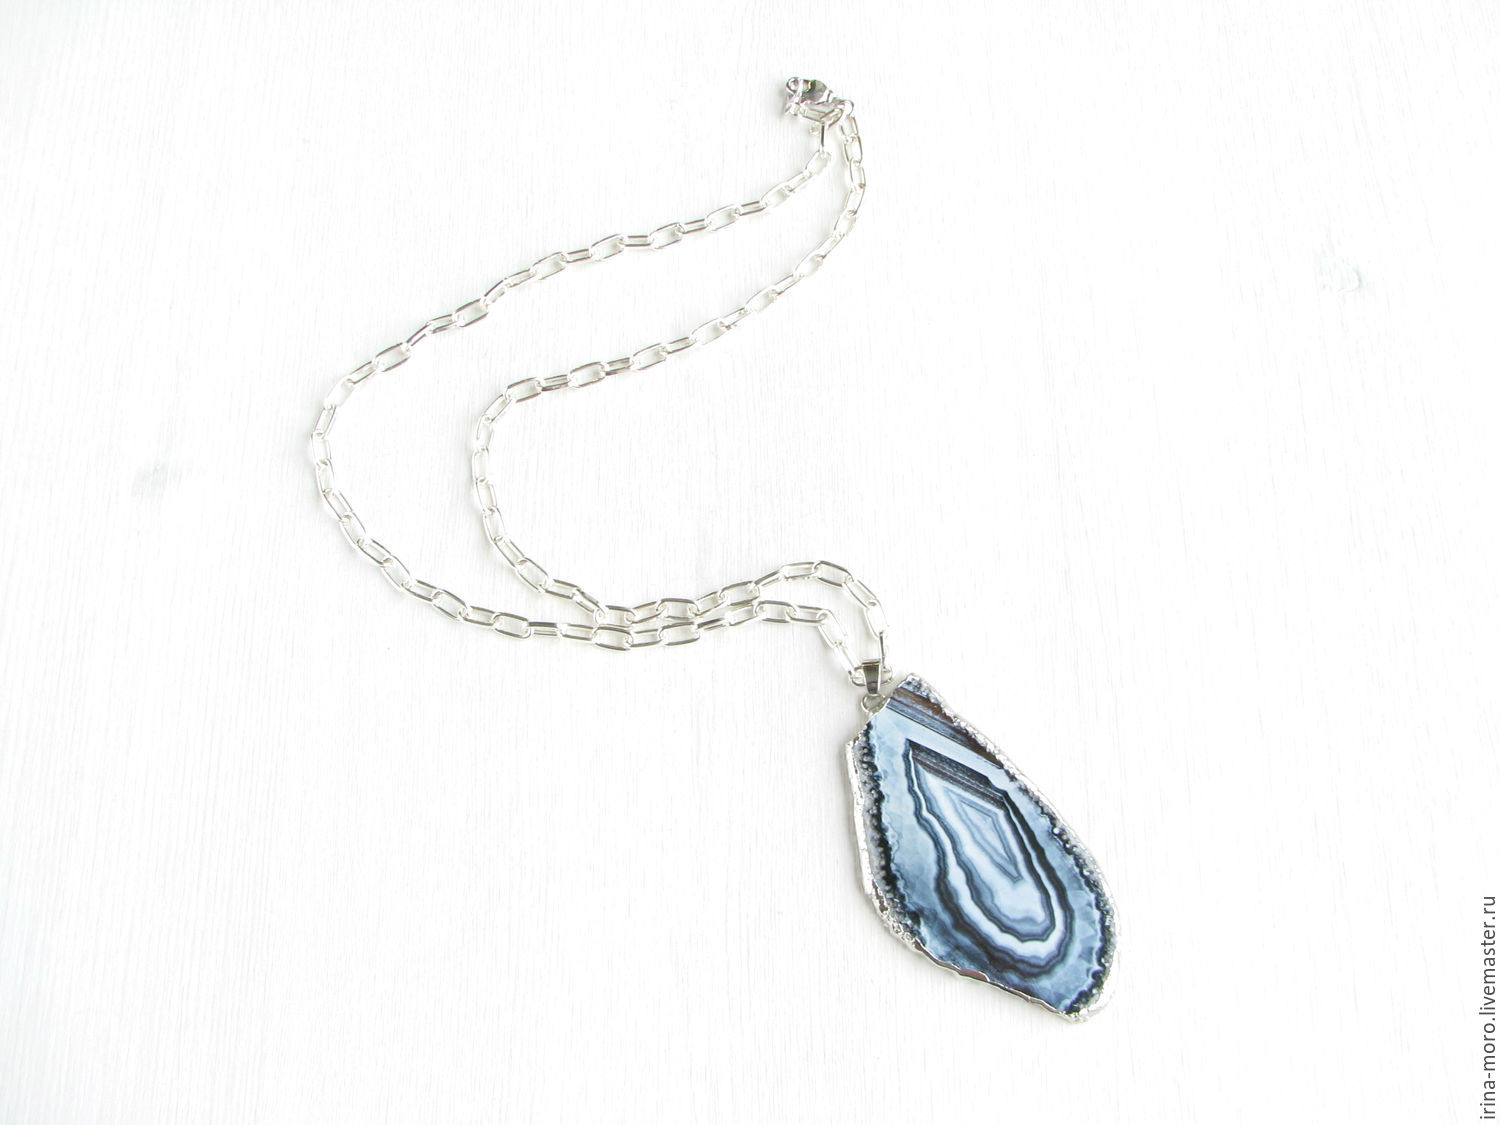 Irene Moreau. Irina Moro.  Large pendant `In white and grey tones`. Silver pendant on a long chain. an unusual gift. the sterling silver pendant.